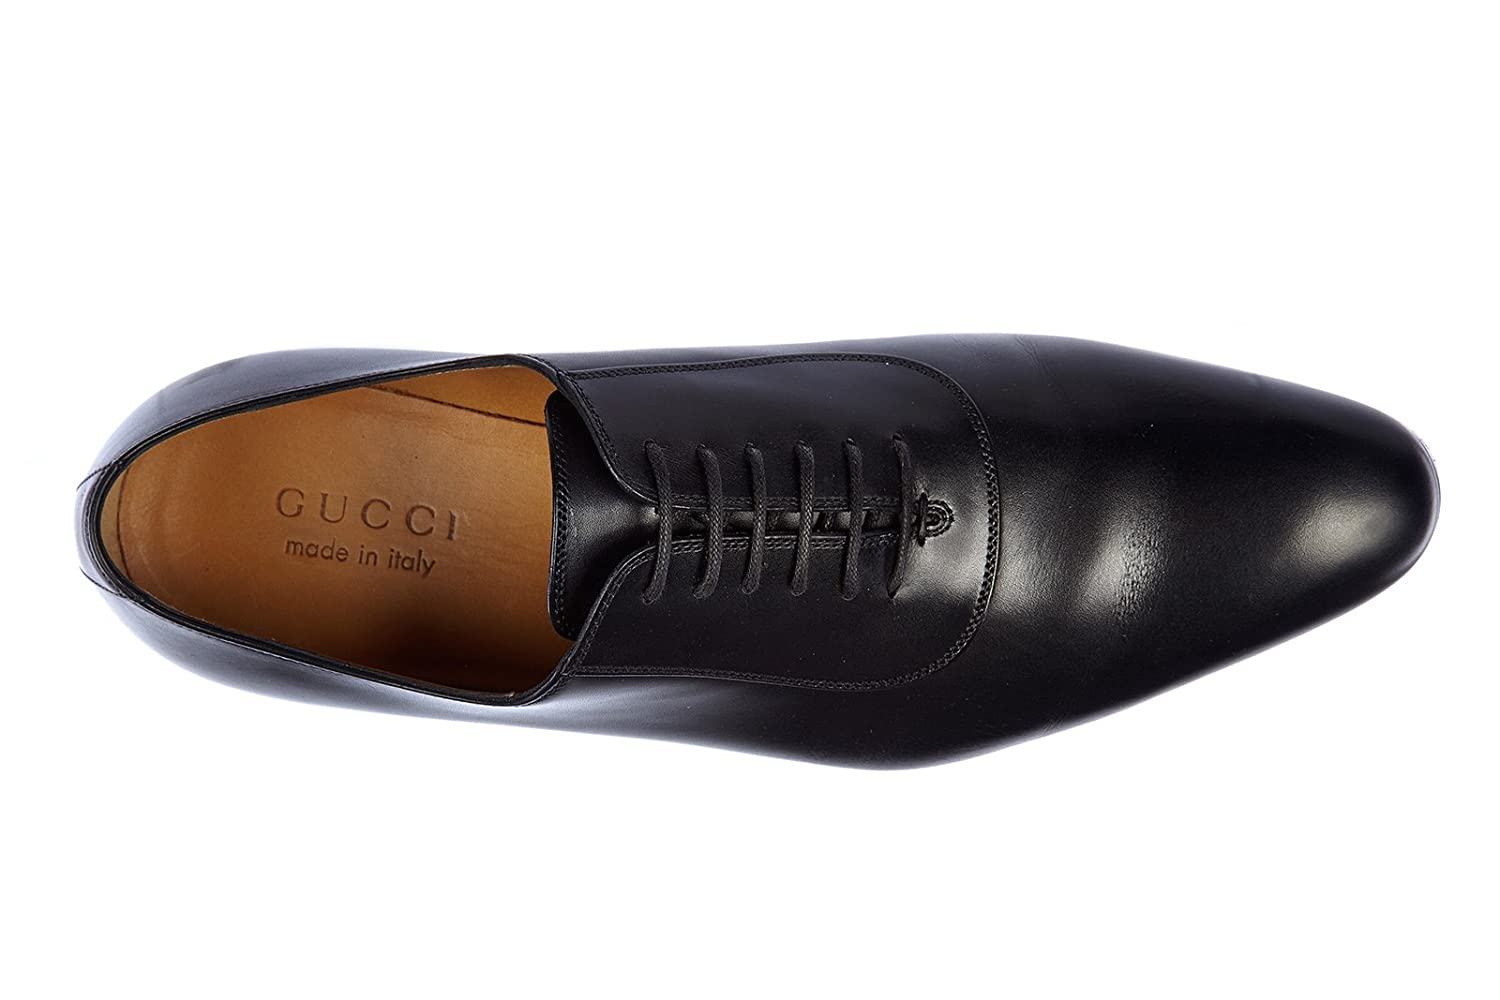 c18891c2e43 Gucci men s classic leather lace up laced formal shoes oxford betis glamour  black UK size 9.5 353017 BLM00 1000  Amazon.co.uk  Shoes   Bags